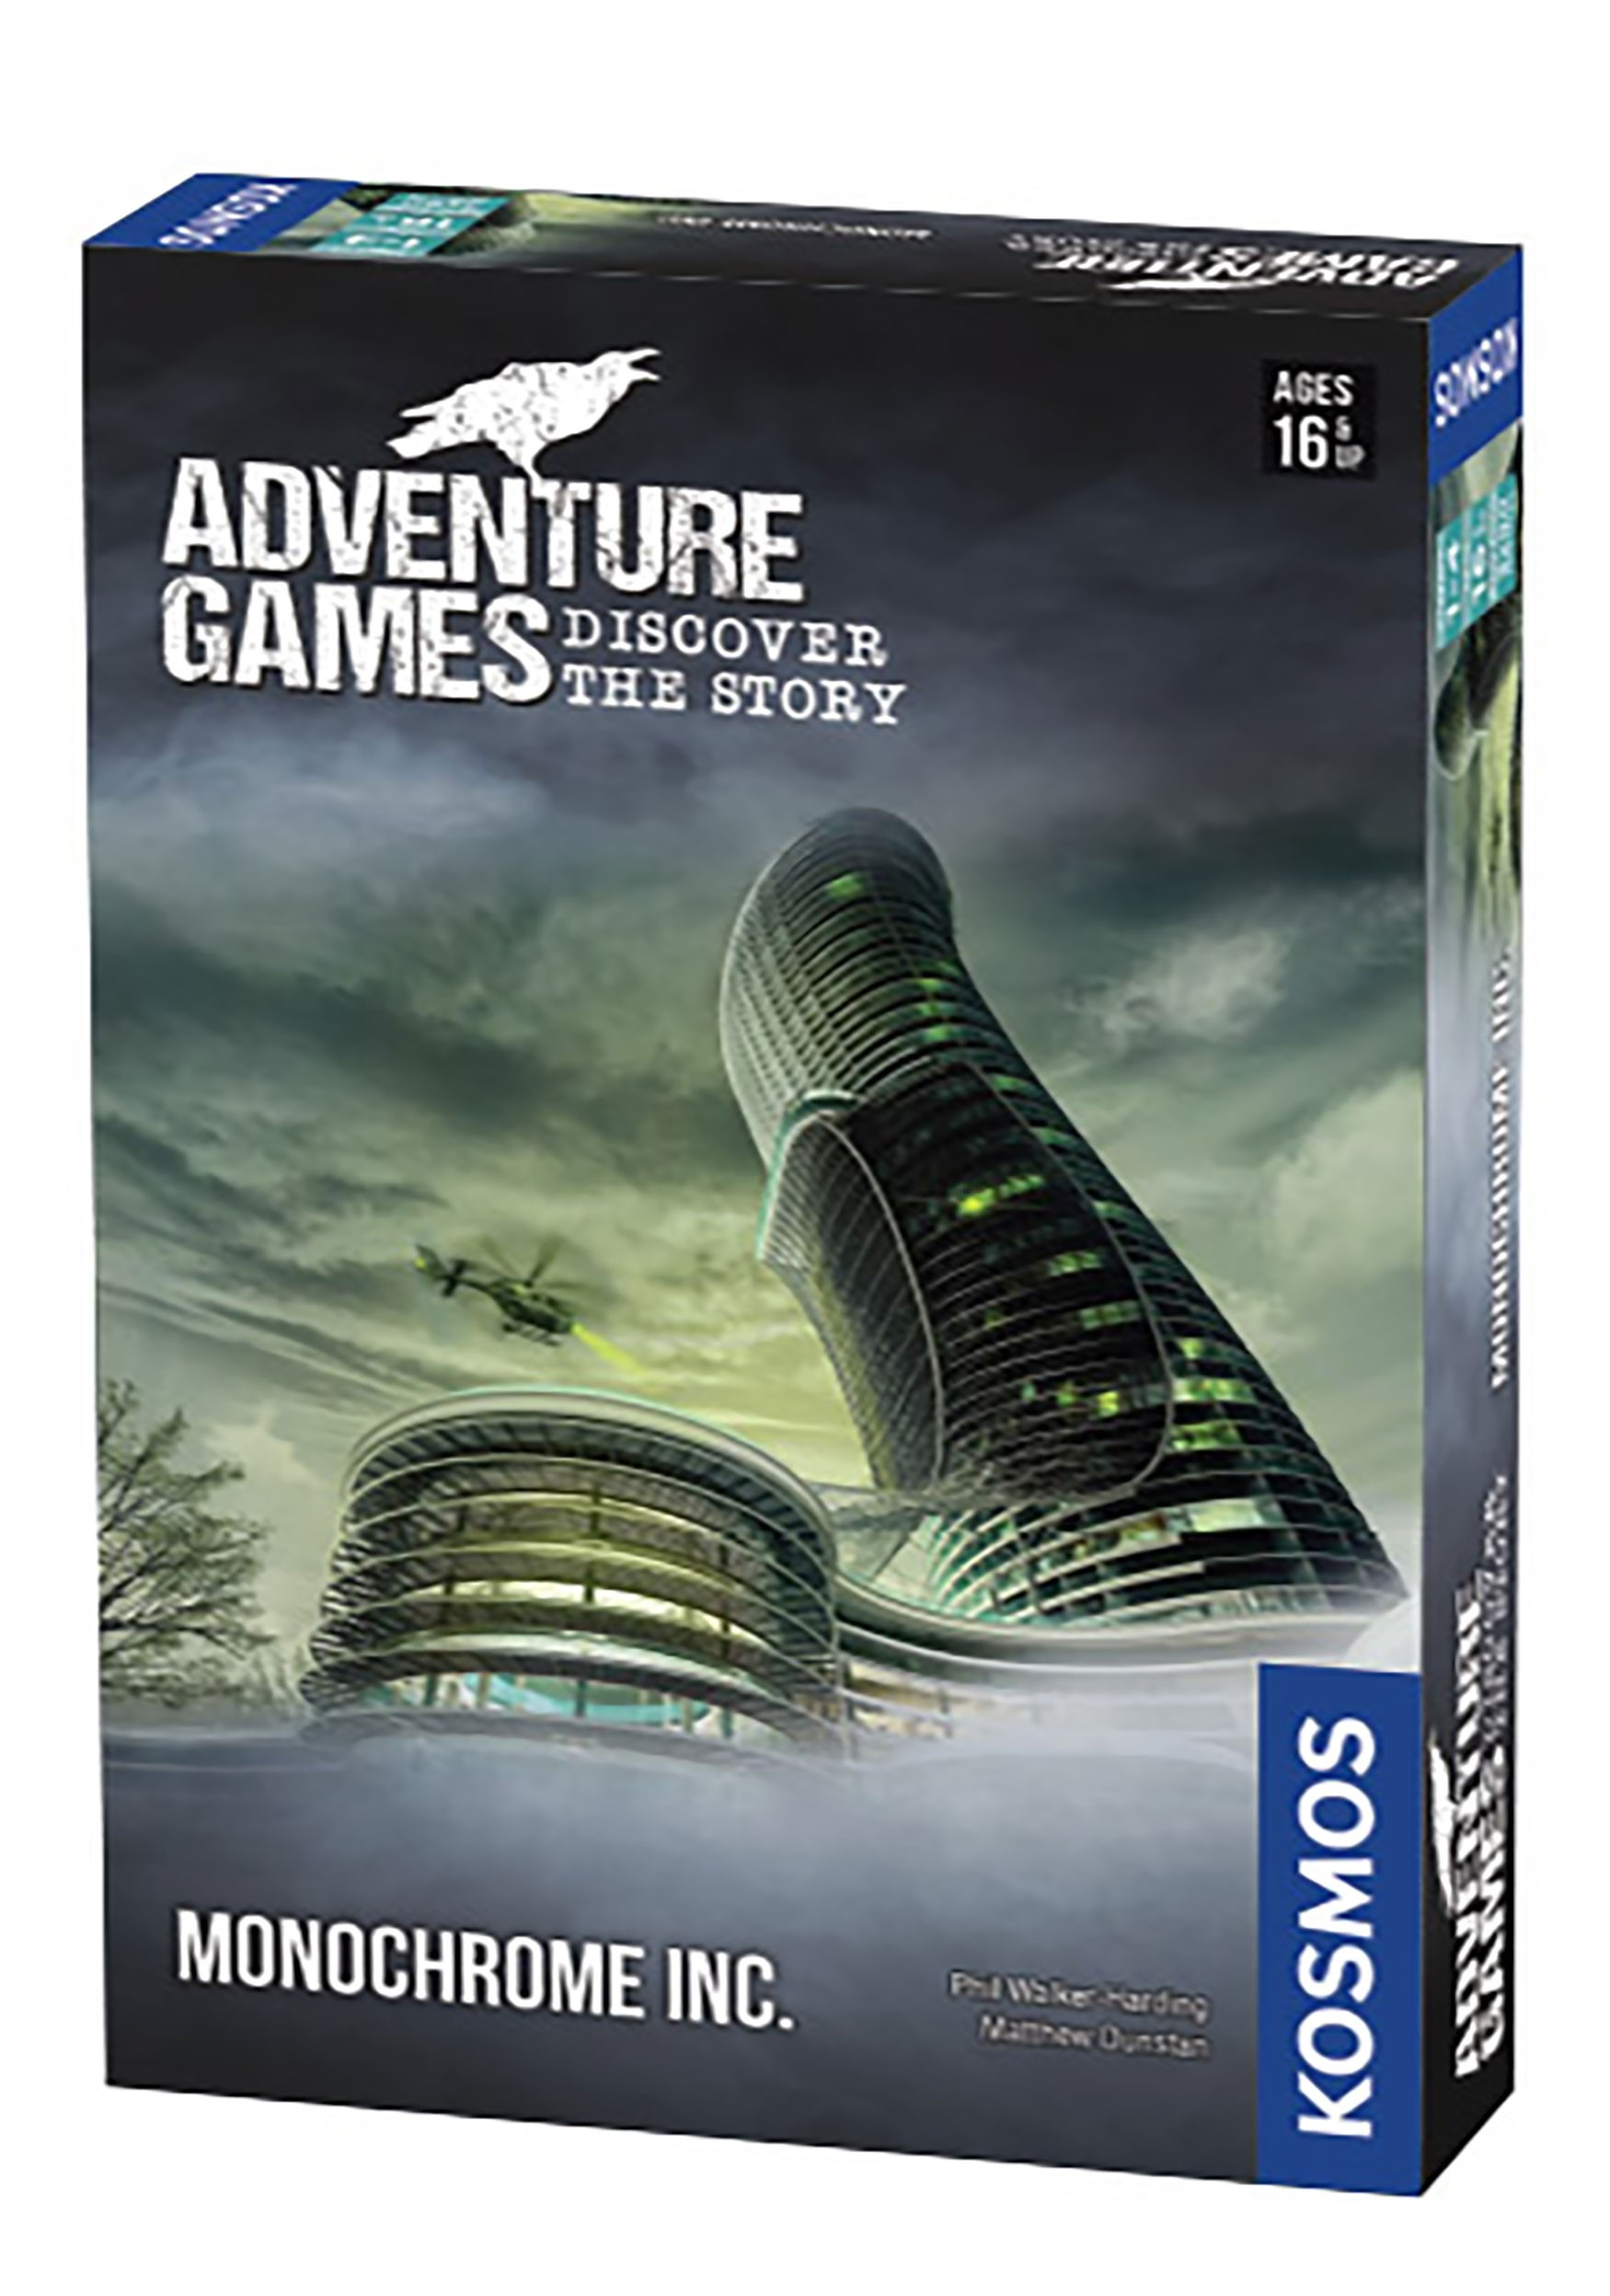 Adventure Games Discover the Story: Monochrome Inc.